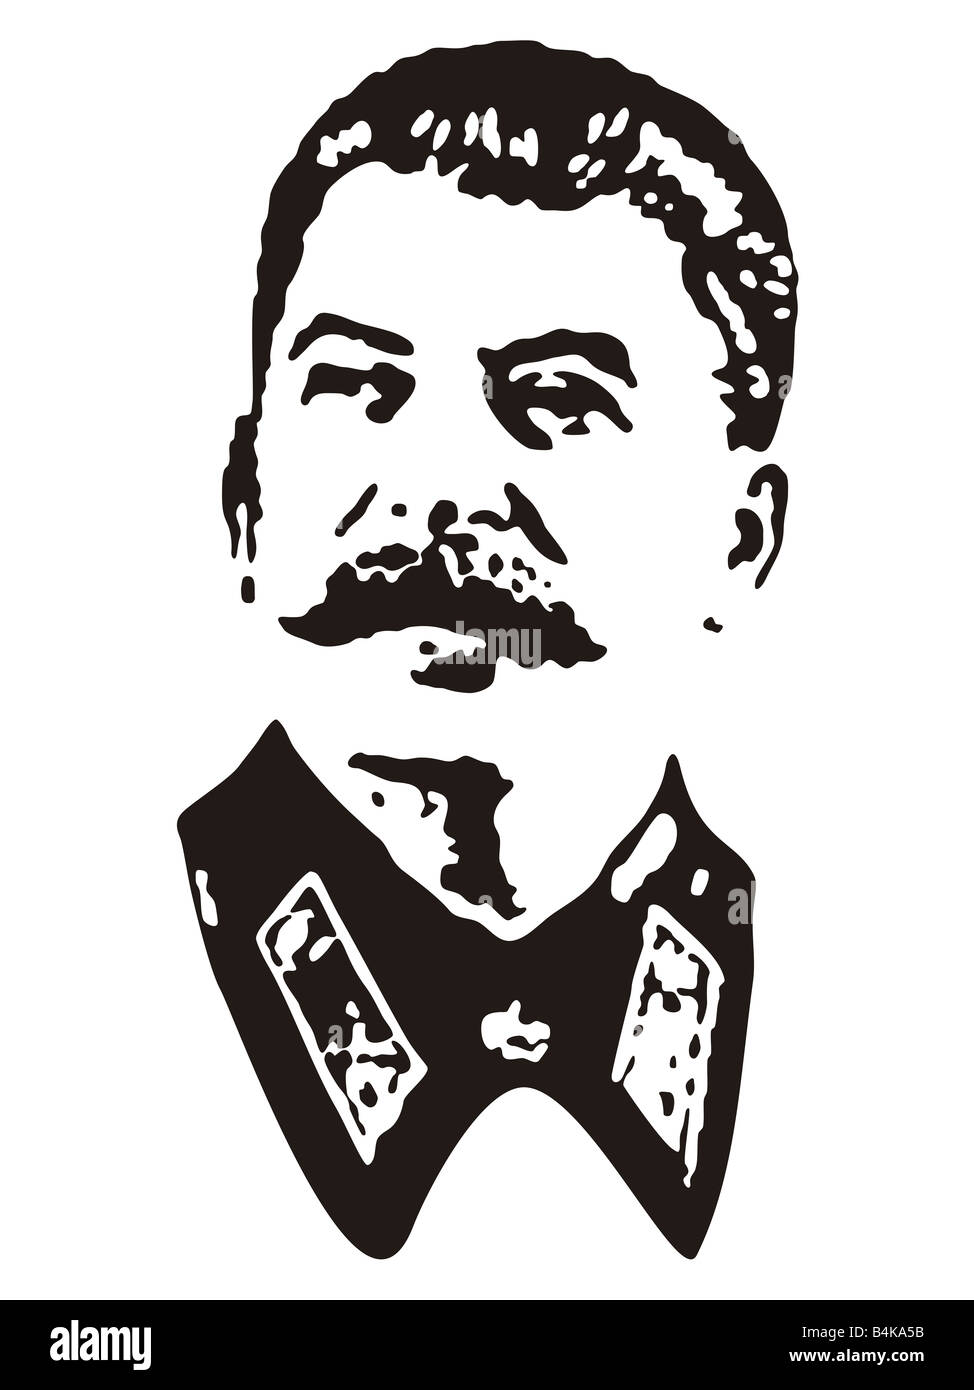 portrait of joseph stalin in black and white stencil style stock  portrait of joseph stalin in black and white stencil style